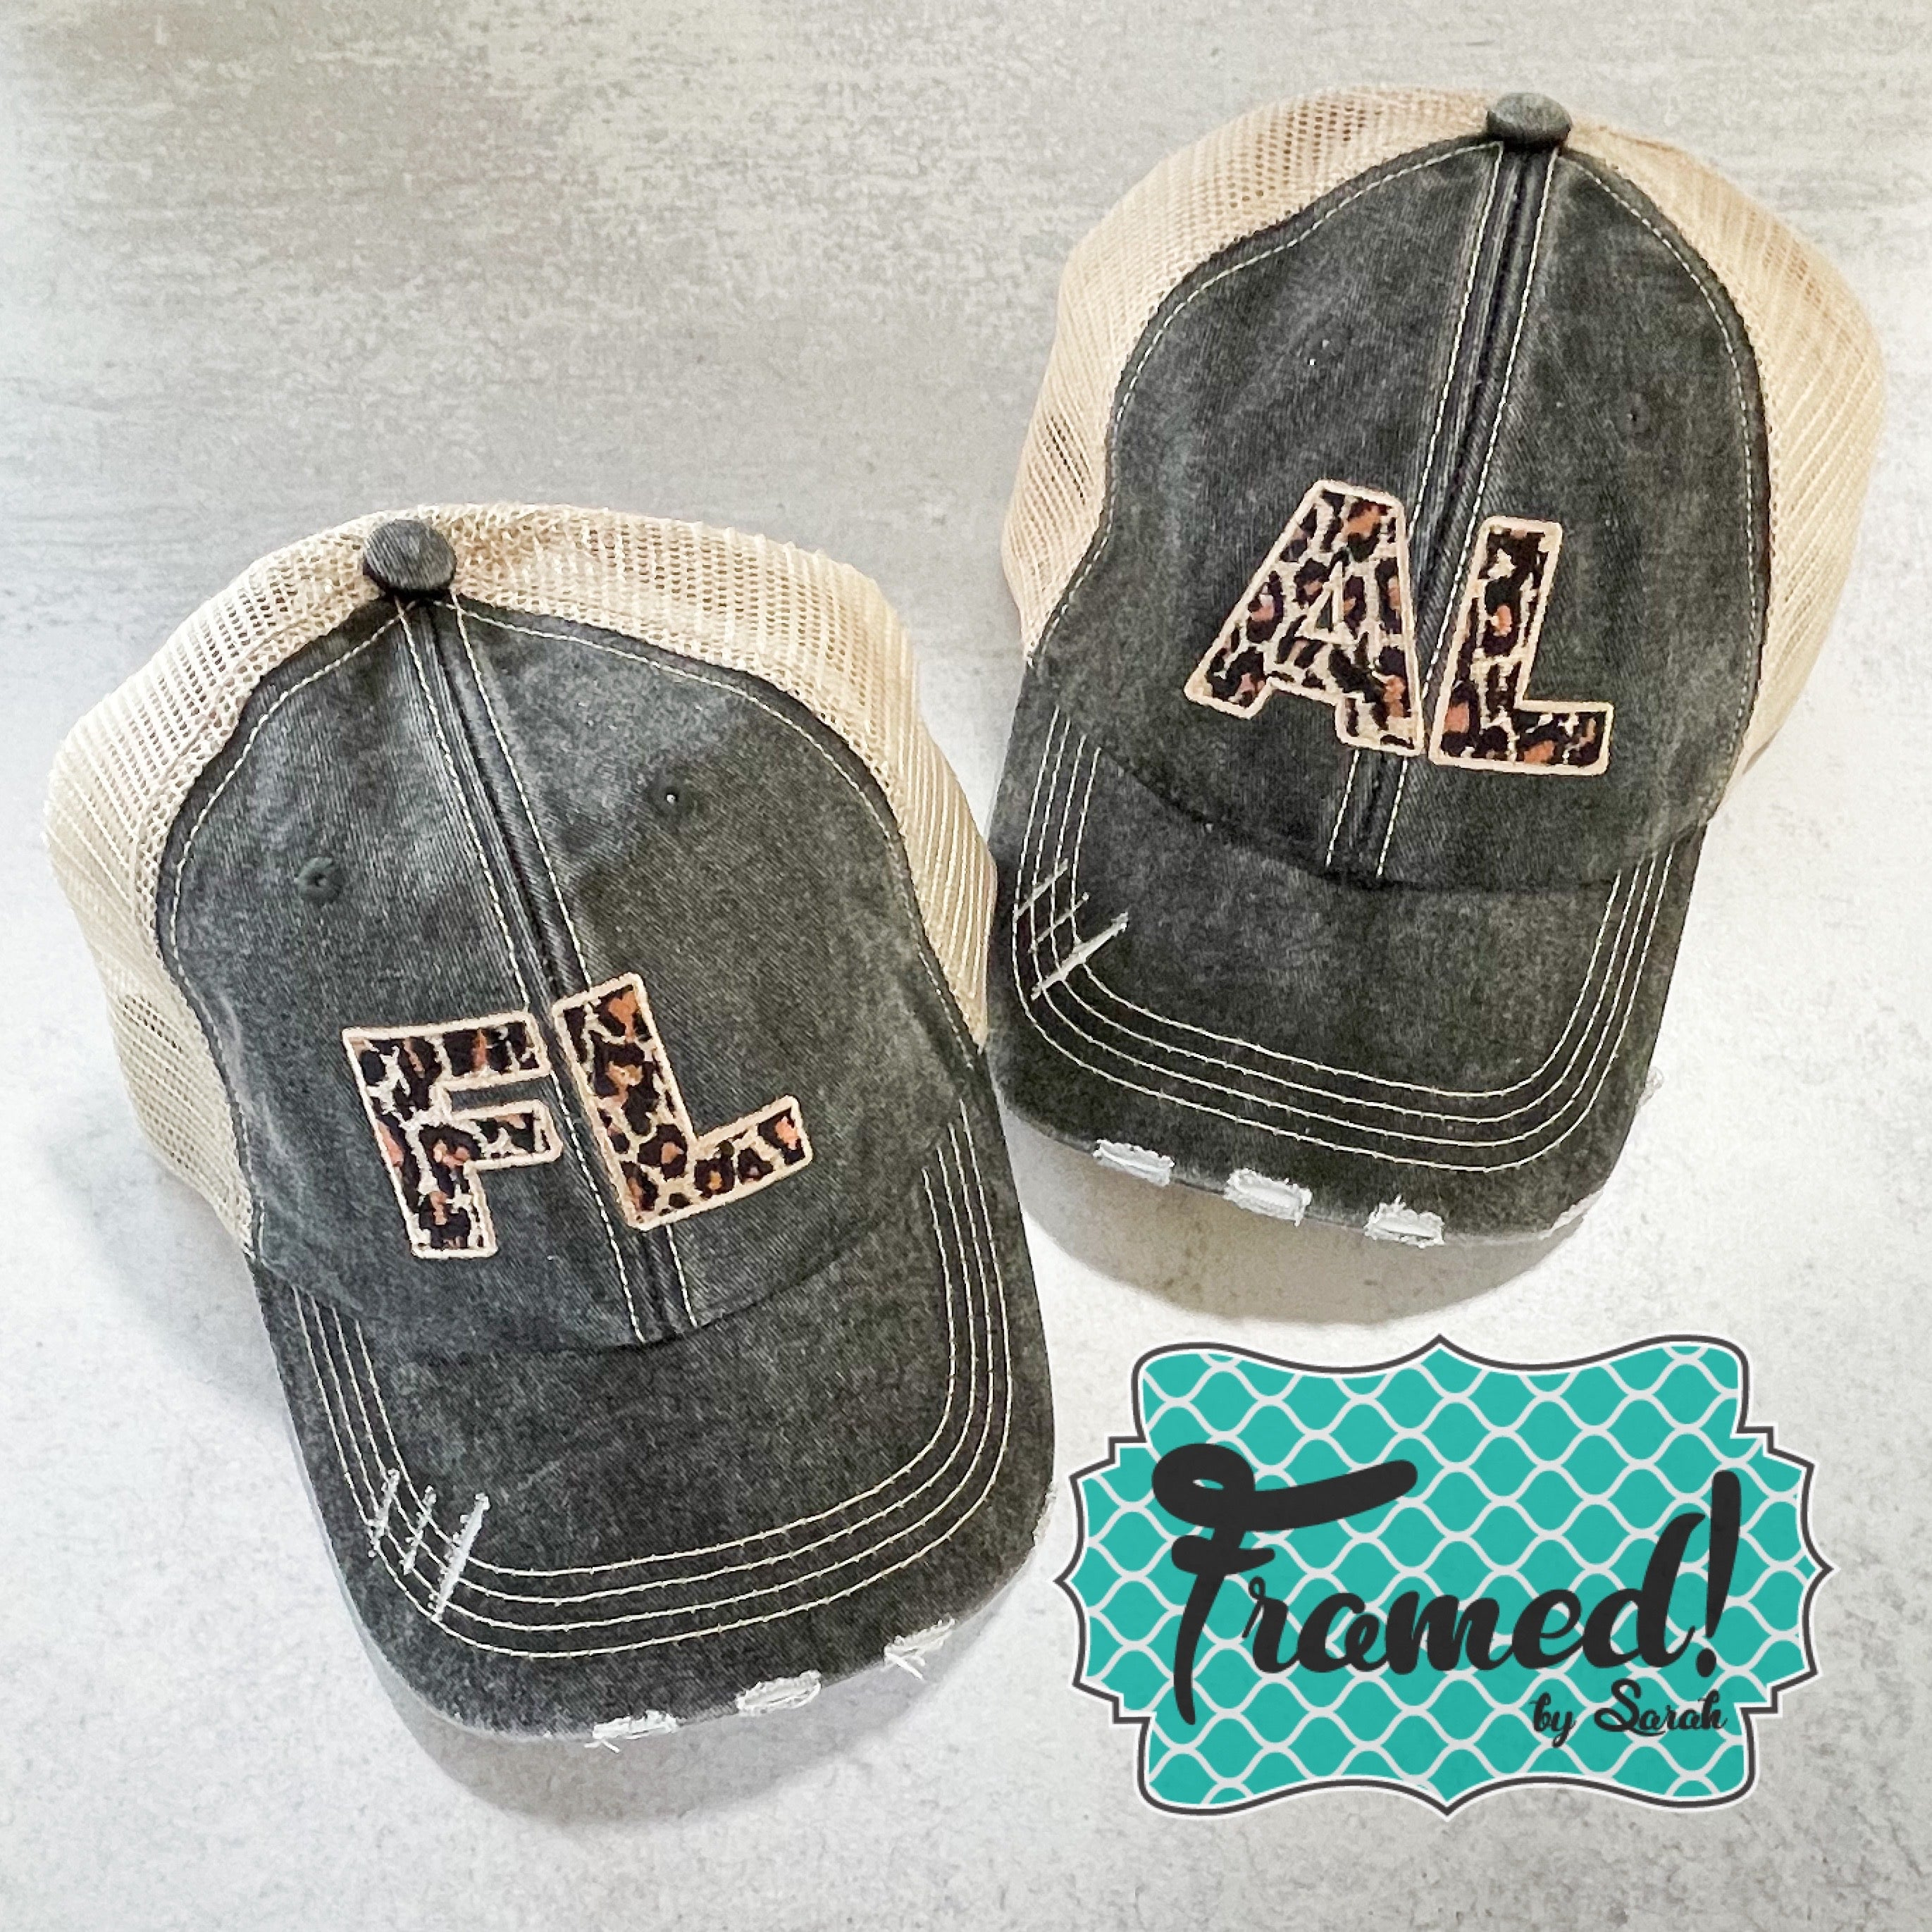 Washed Graphite Trucker Hats